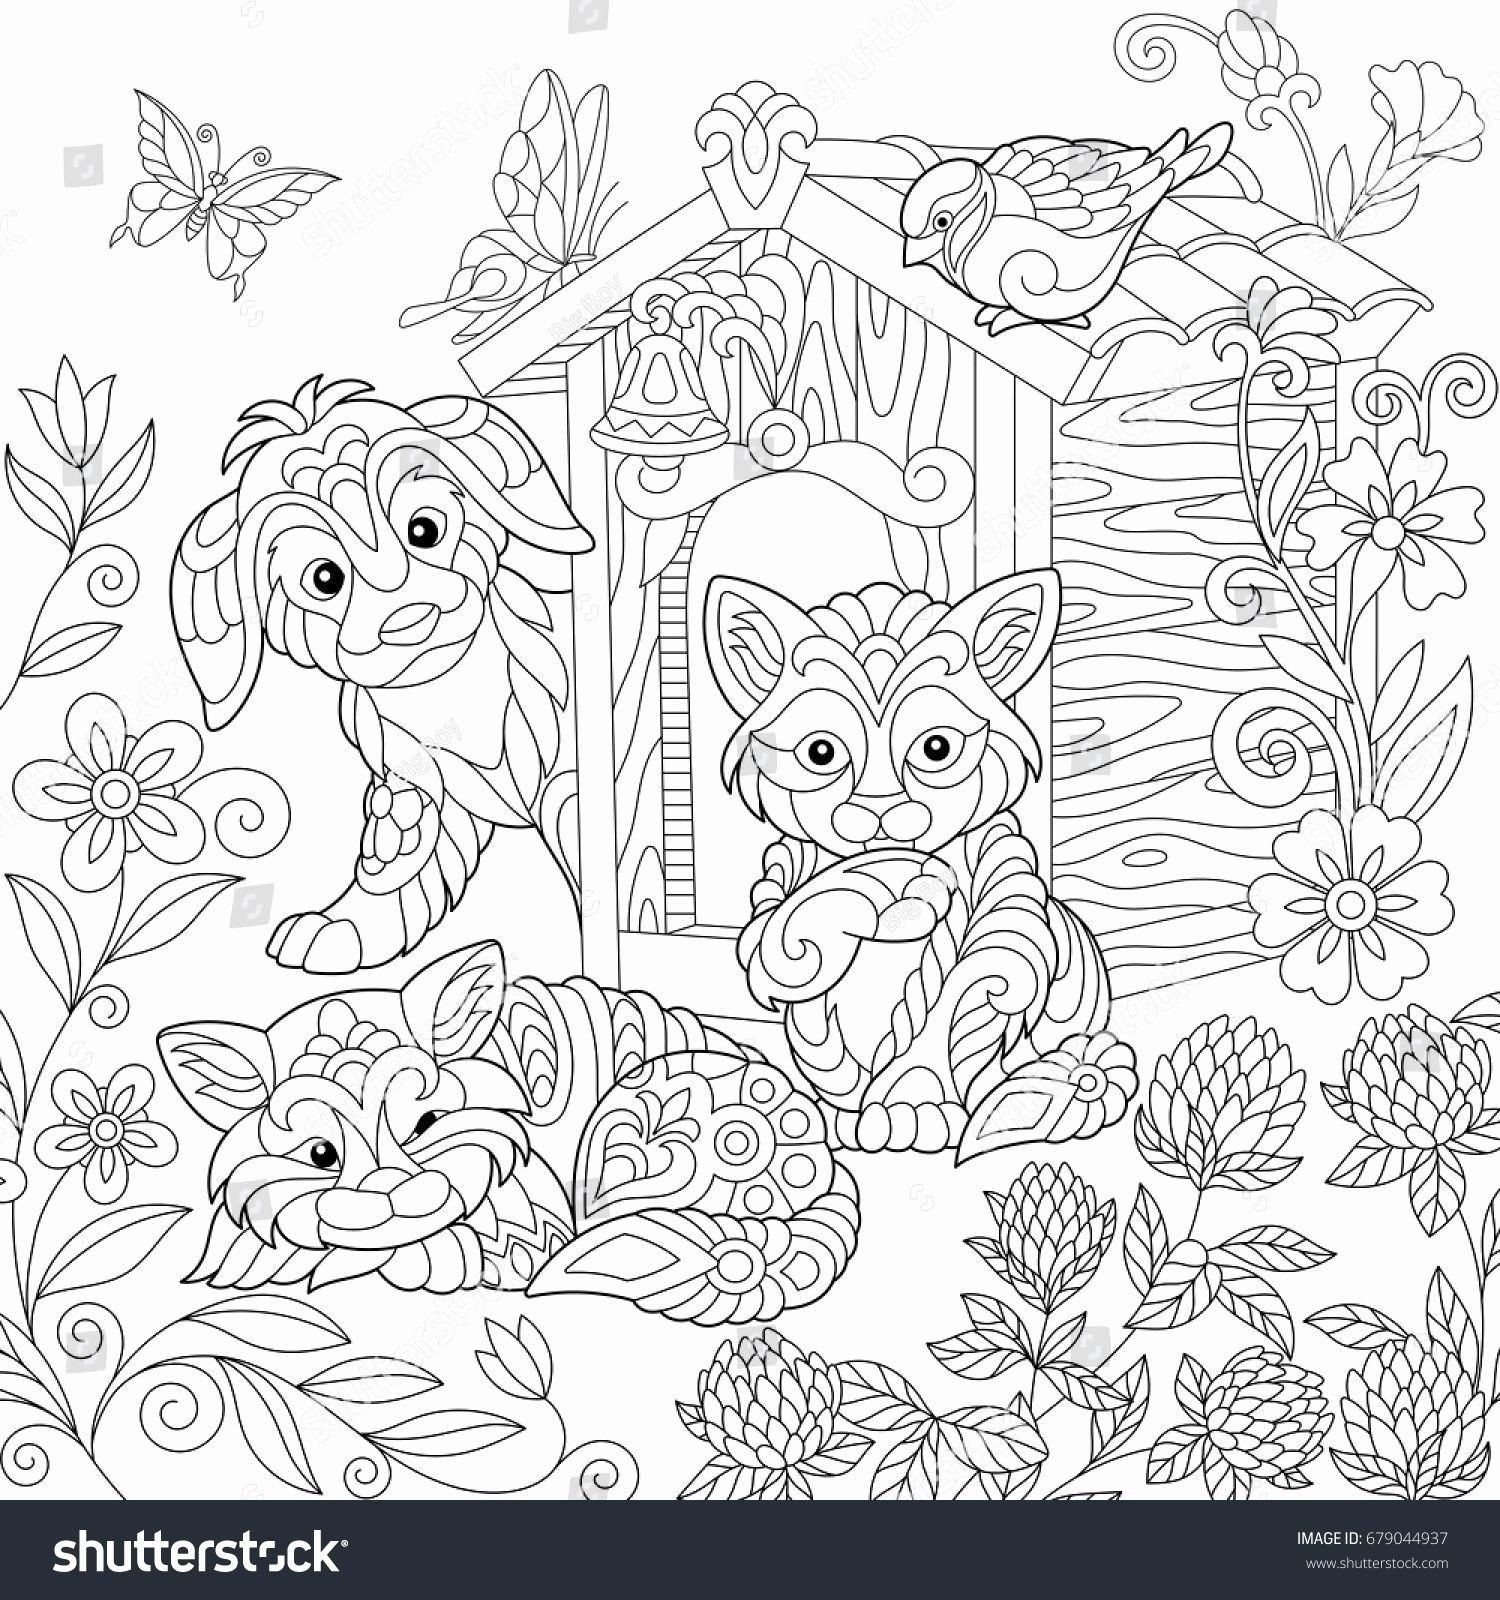 Cute Cat Coloring Pages New Fresh Cute Cat Coloring Pages Cat Coloring Page Puppy Coloring Pages Dog Coloring Page